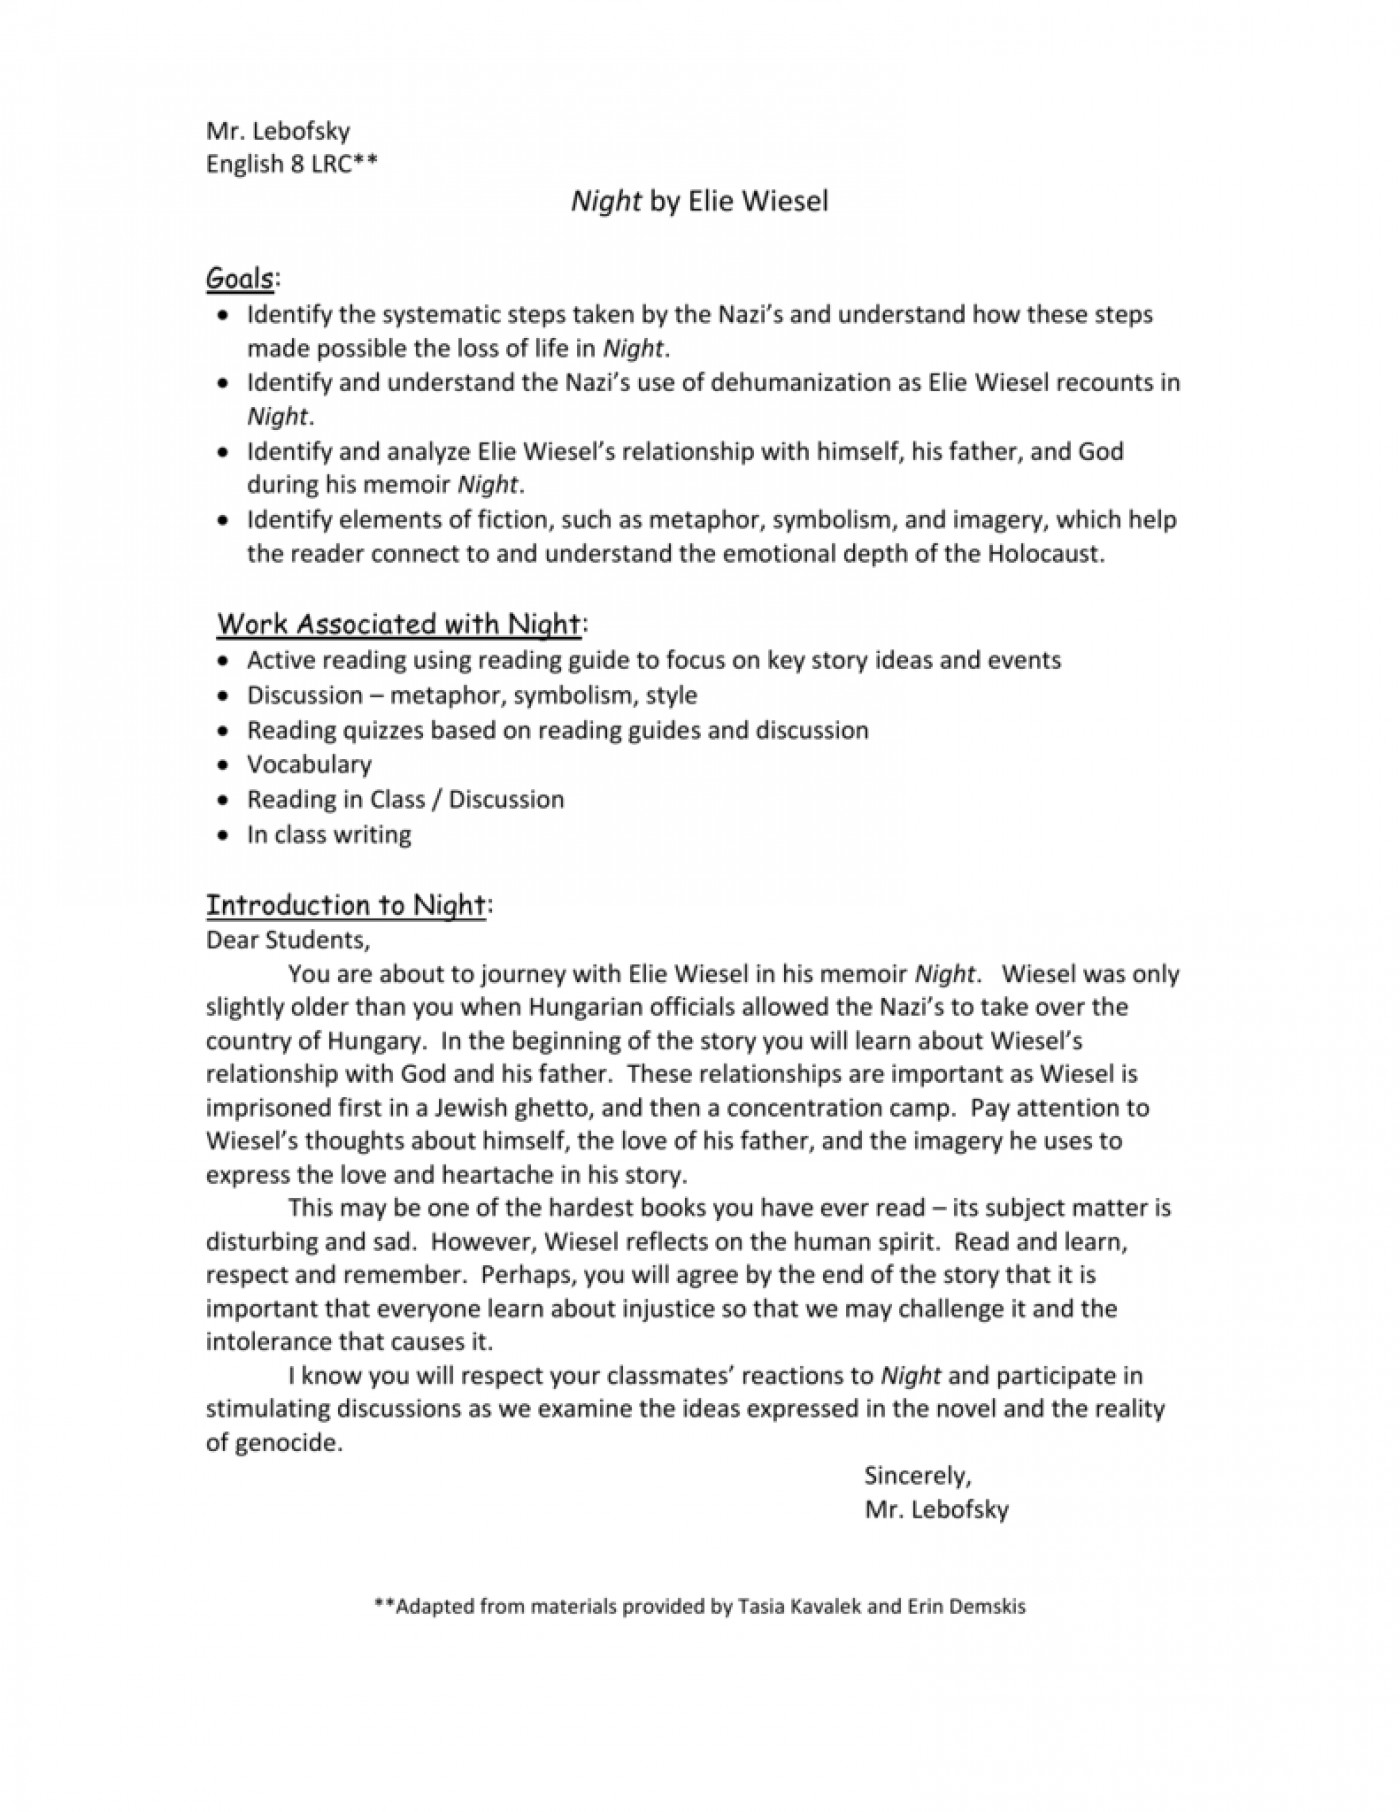 009 Essay Example 009753876 1 Night By Elie Fearsome Wiesel Topics Writing Prompts Examples 1400